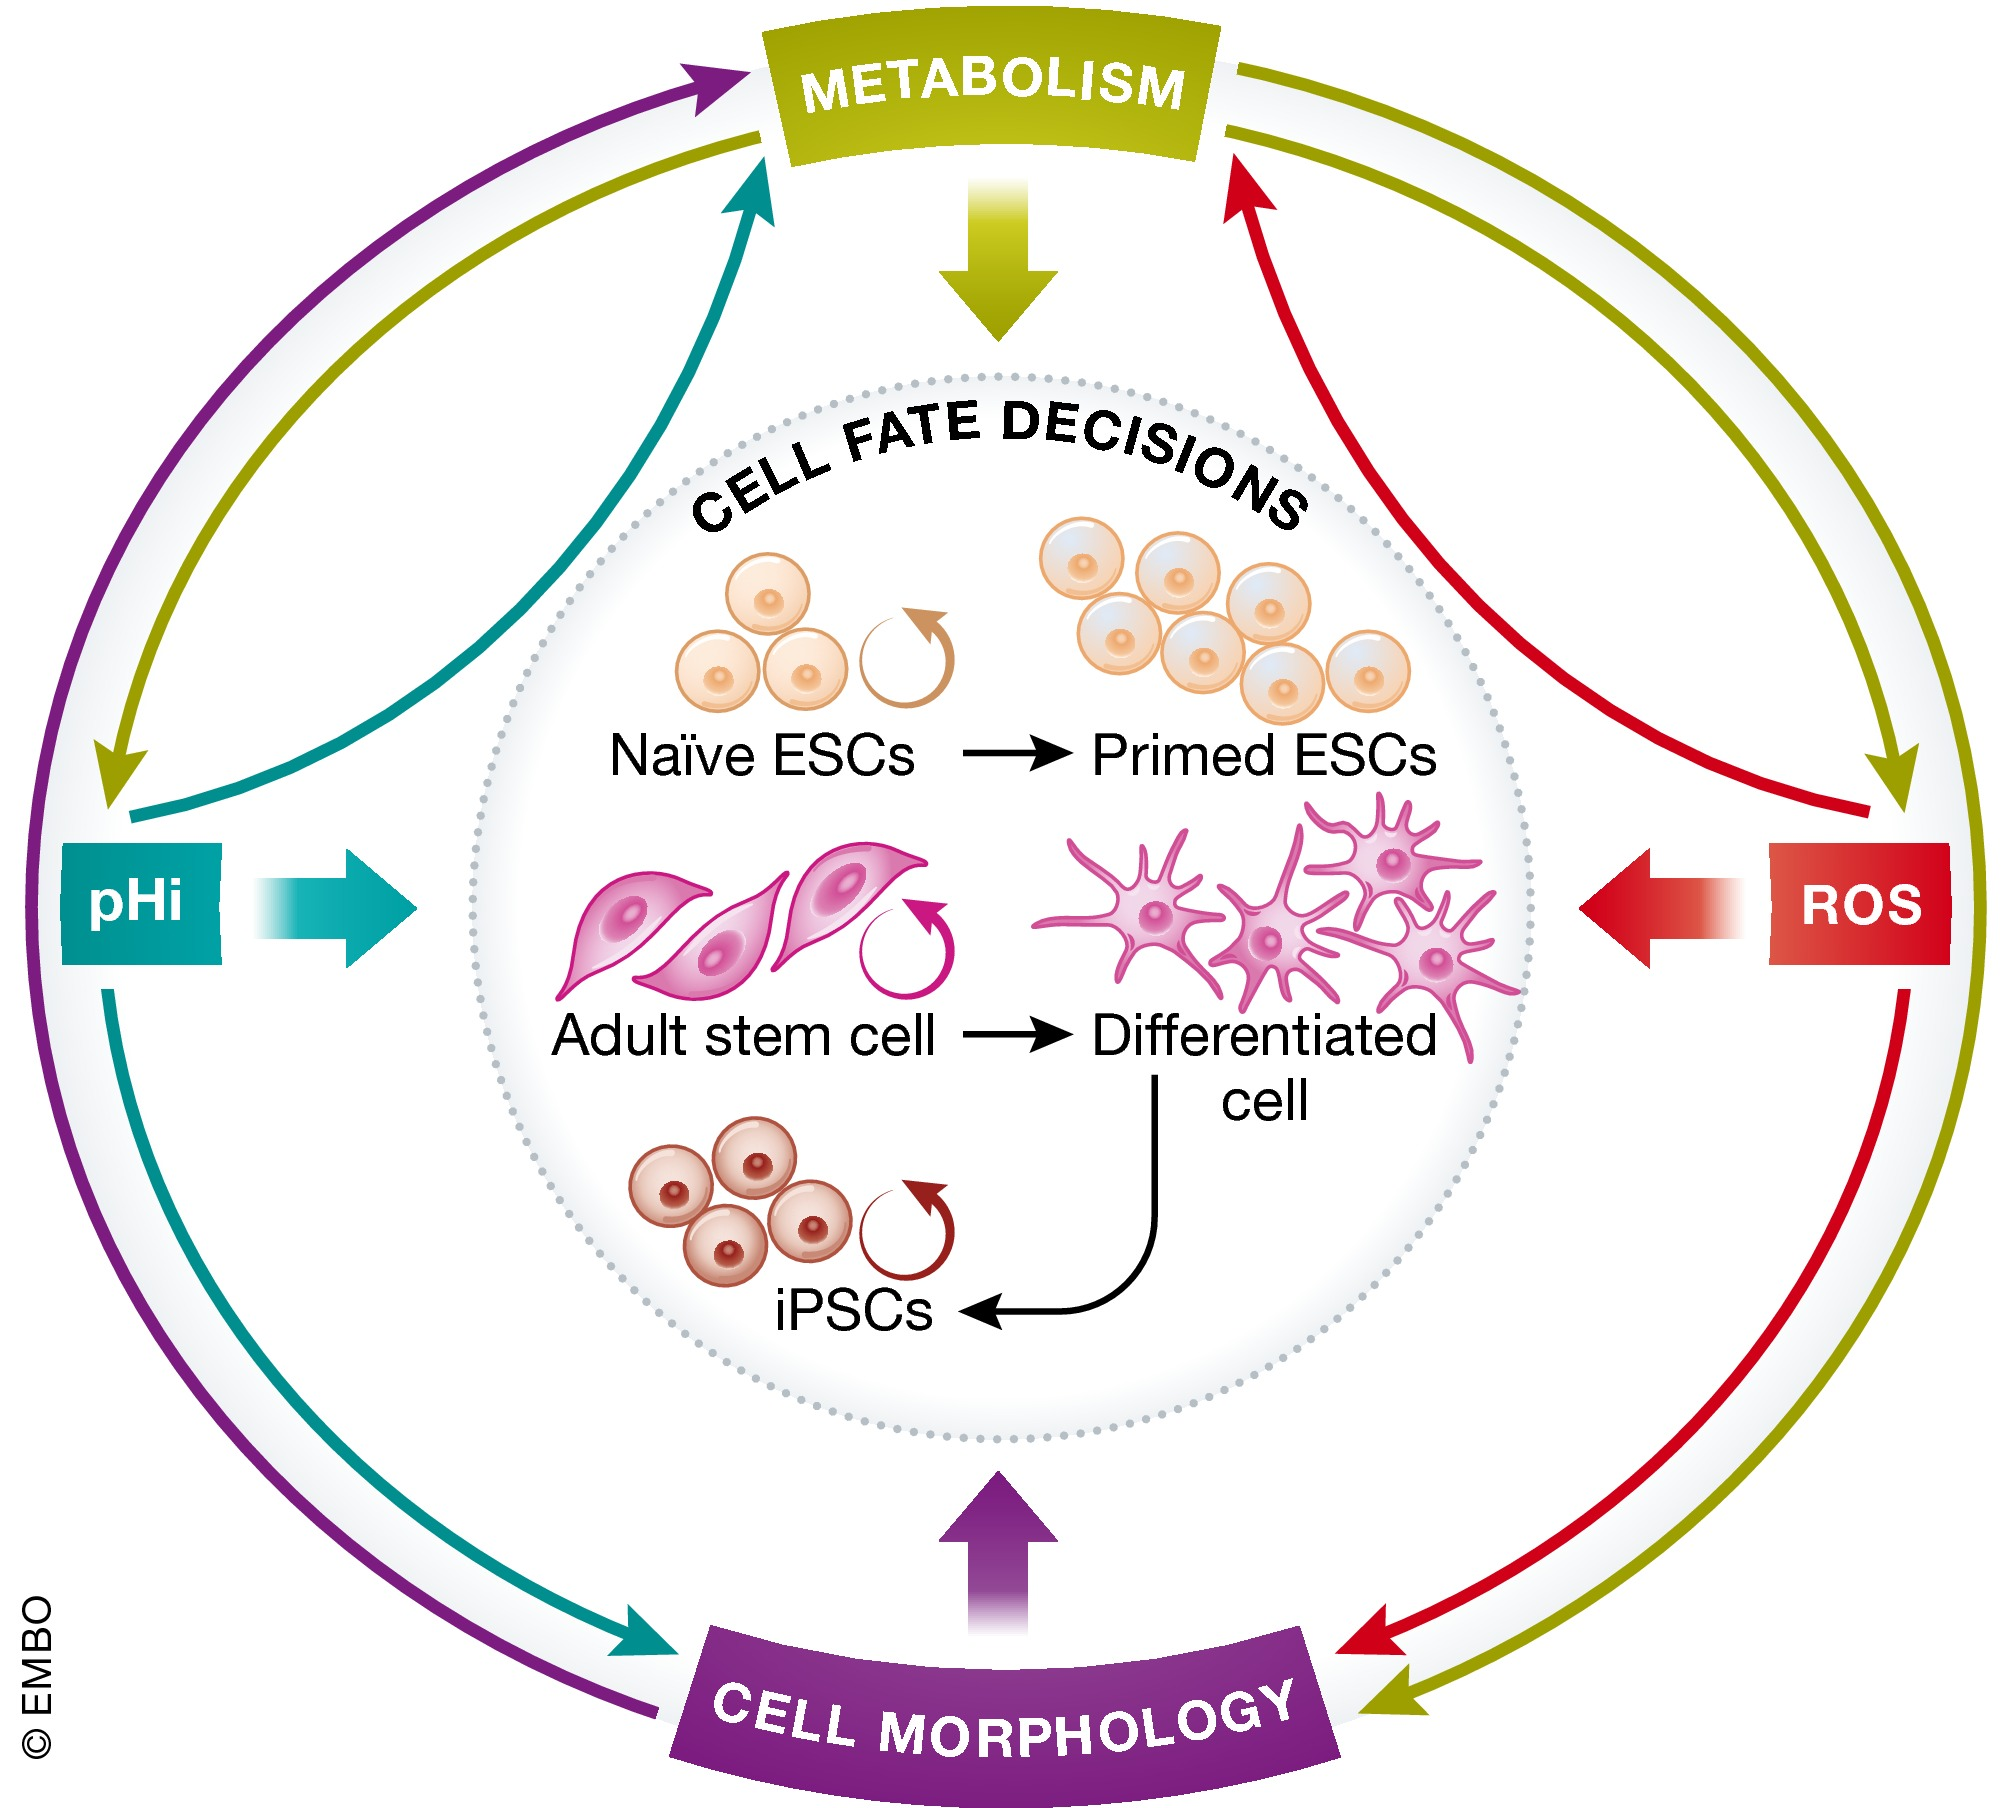 Cell fate decisions: emerging roles for metabolic signals and cell morphology | EMBO reports